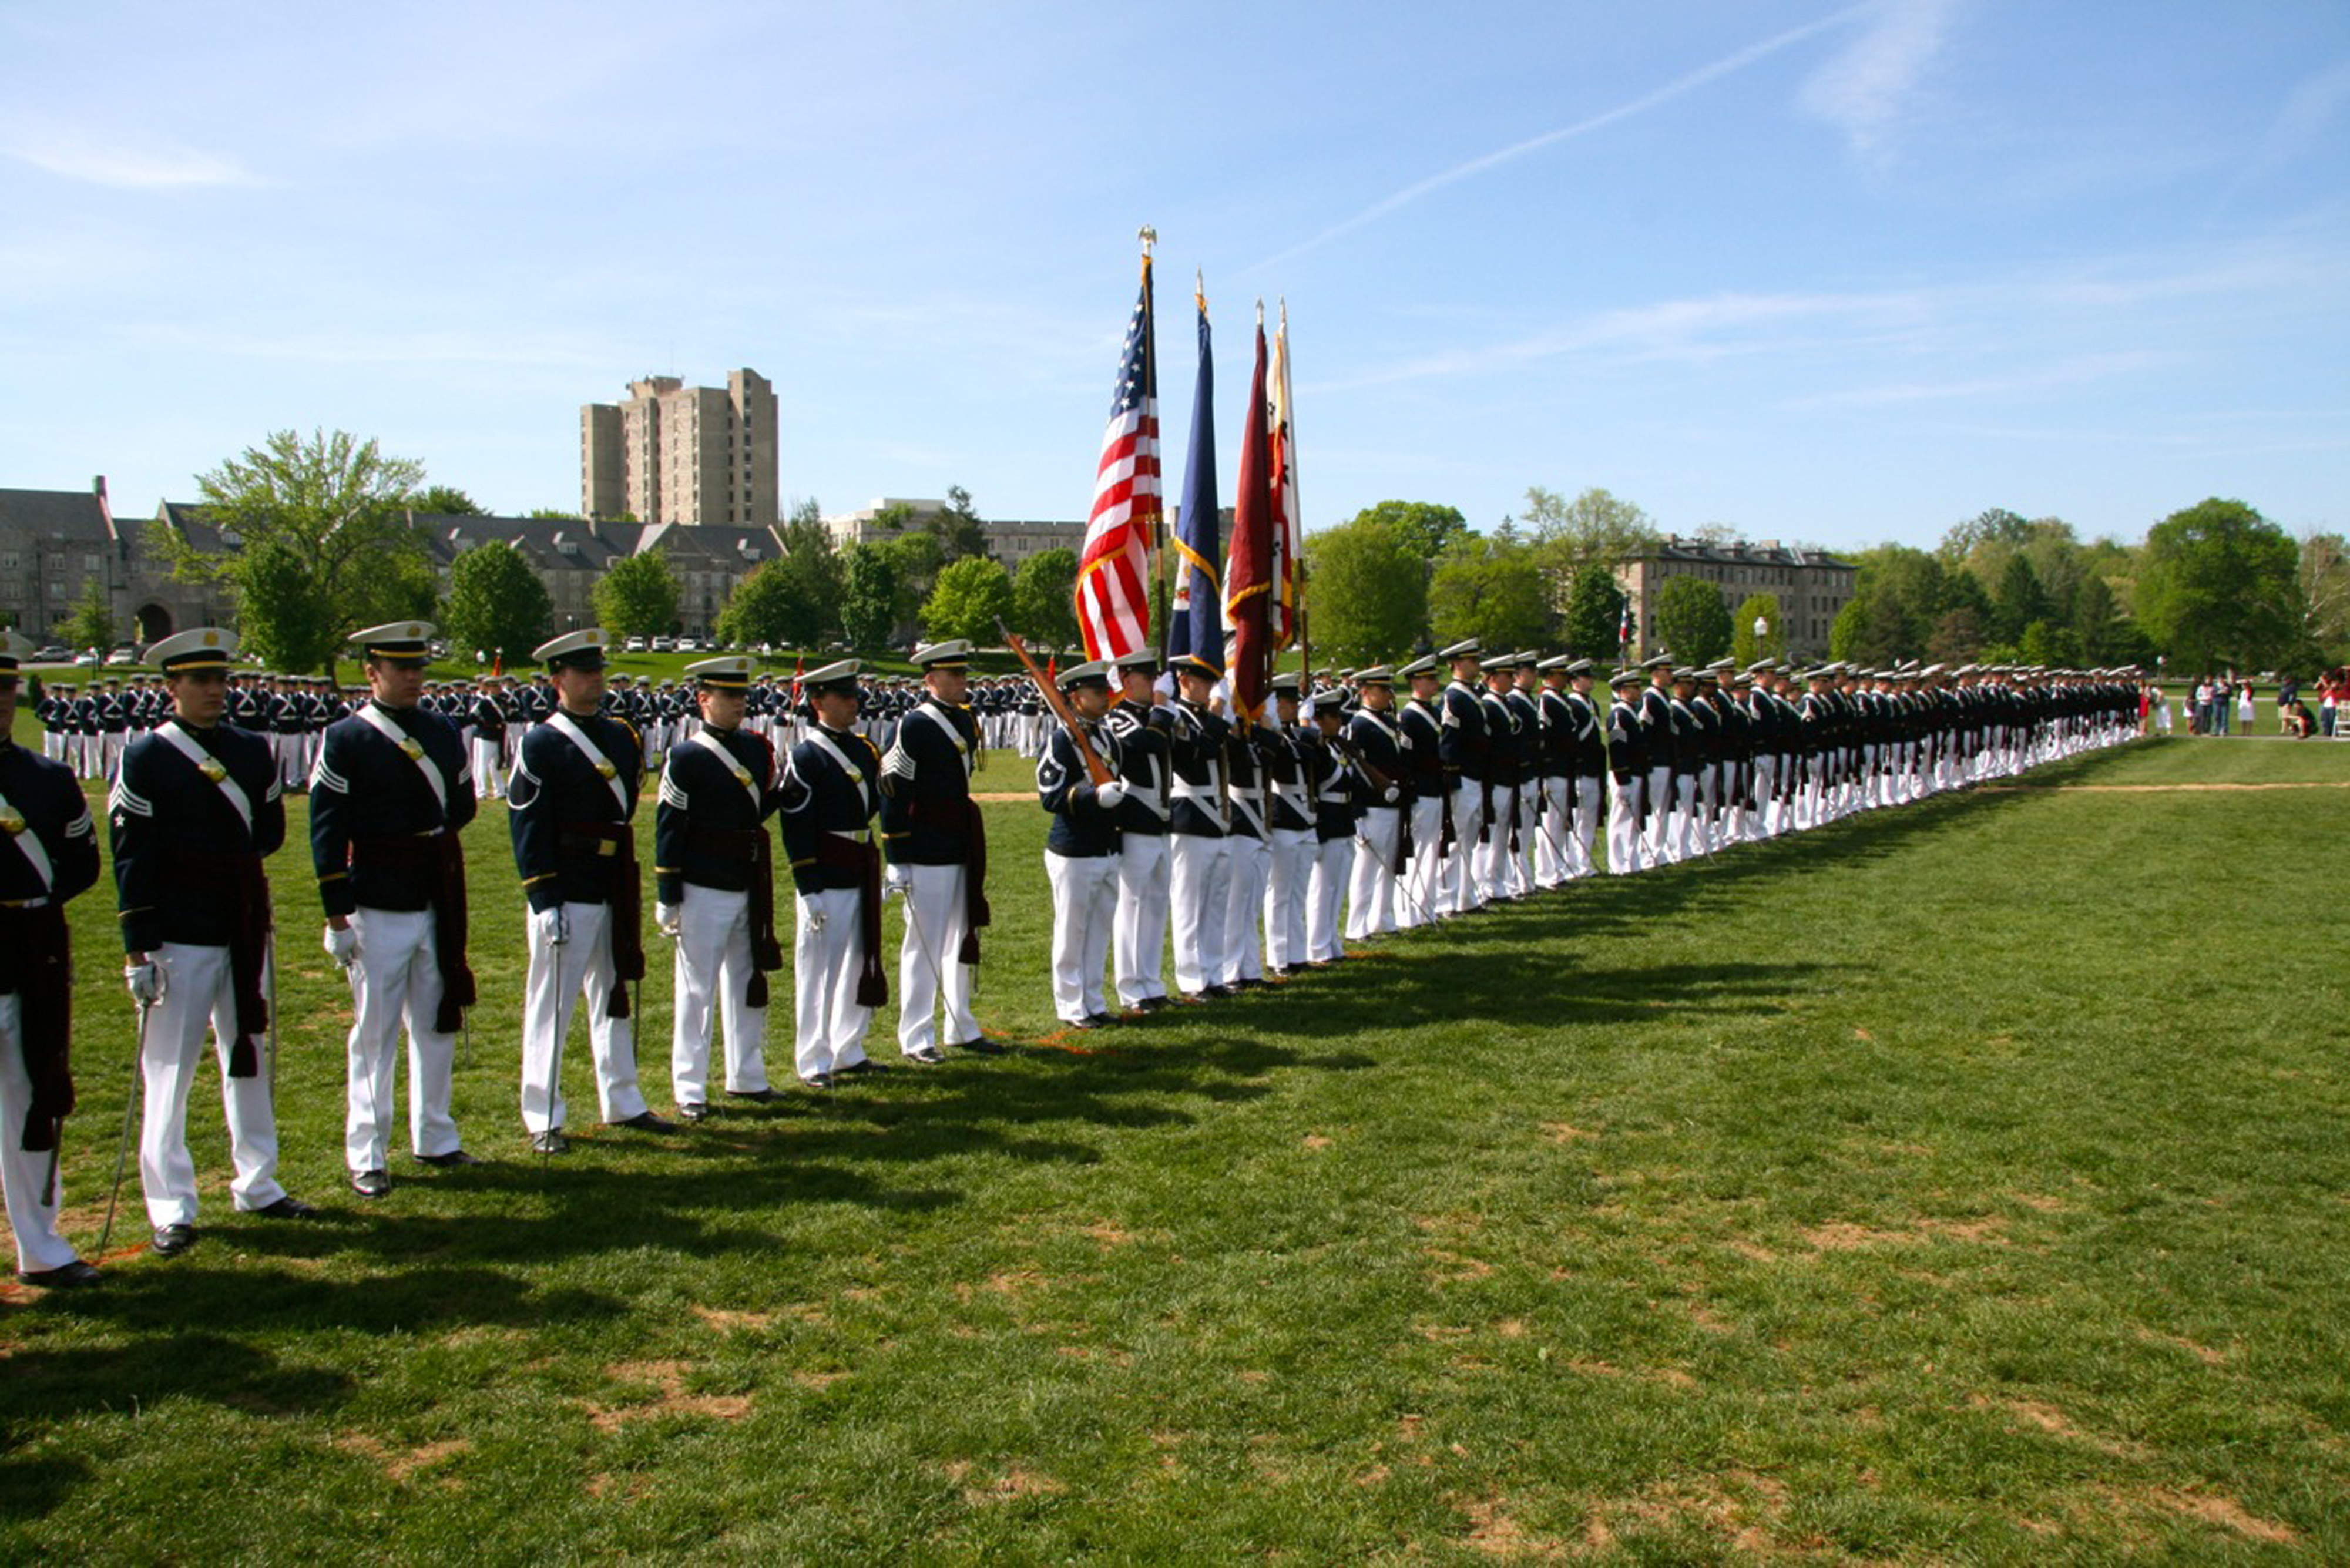 Members of the Virginia Tech Corps of Cadets Class of 2011 are formed up on the Drillfield as they exit the Regiment for the last time during the Change of Command parade last spring